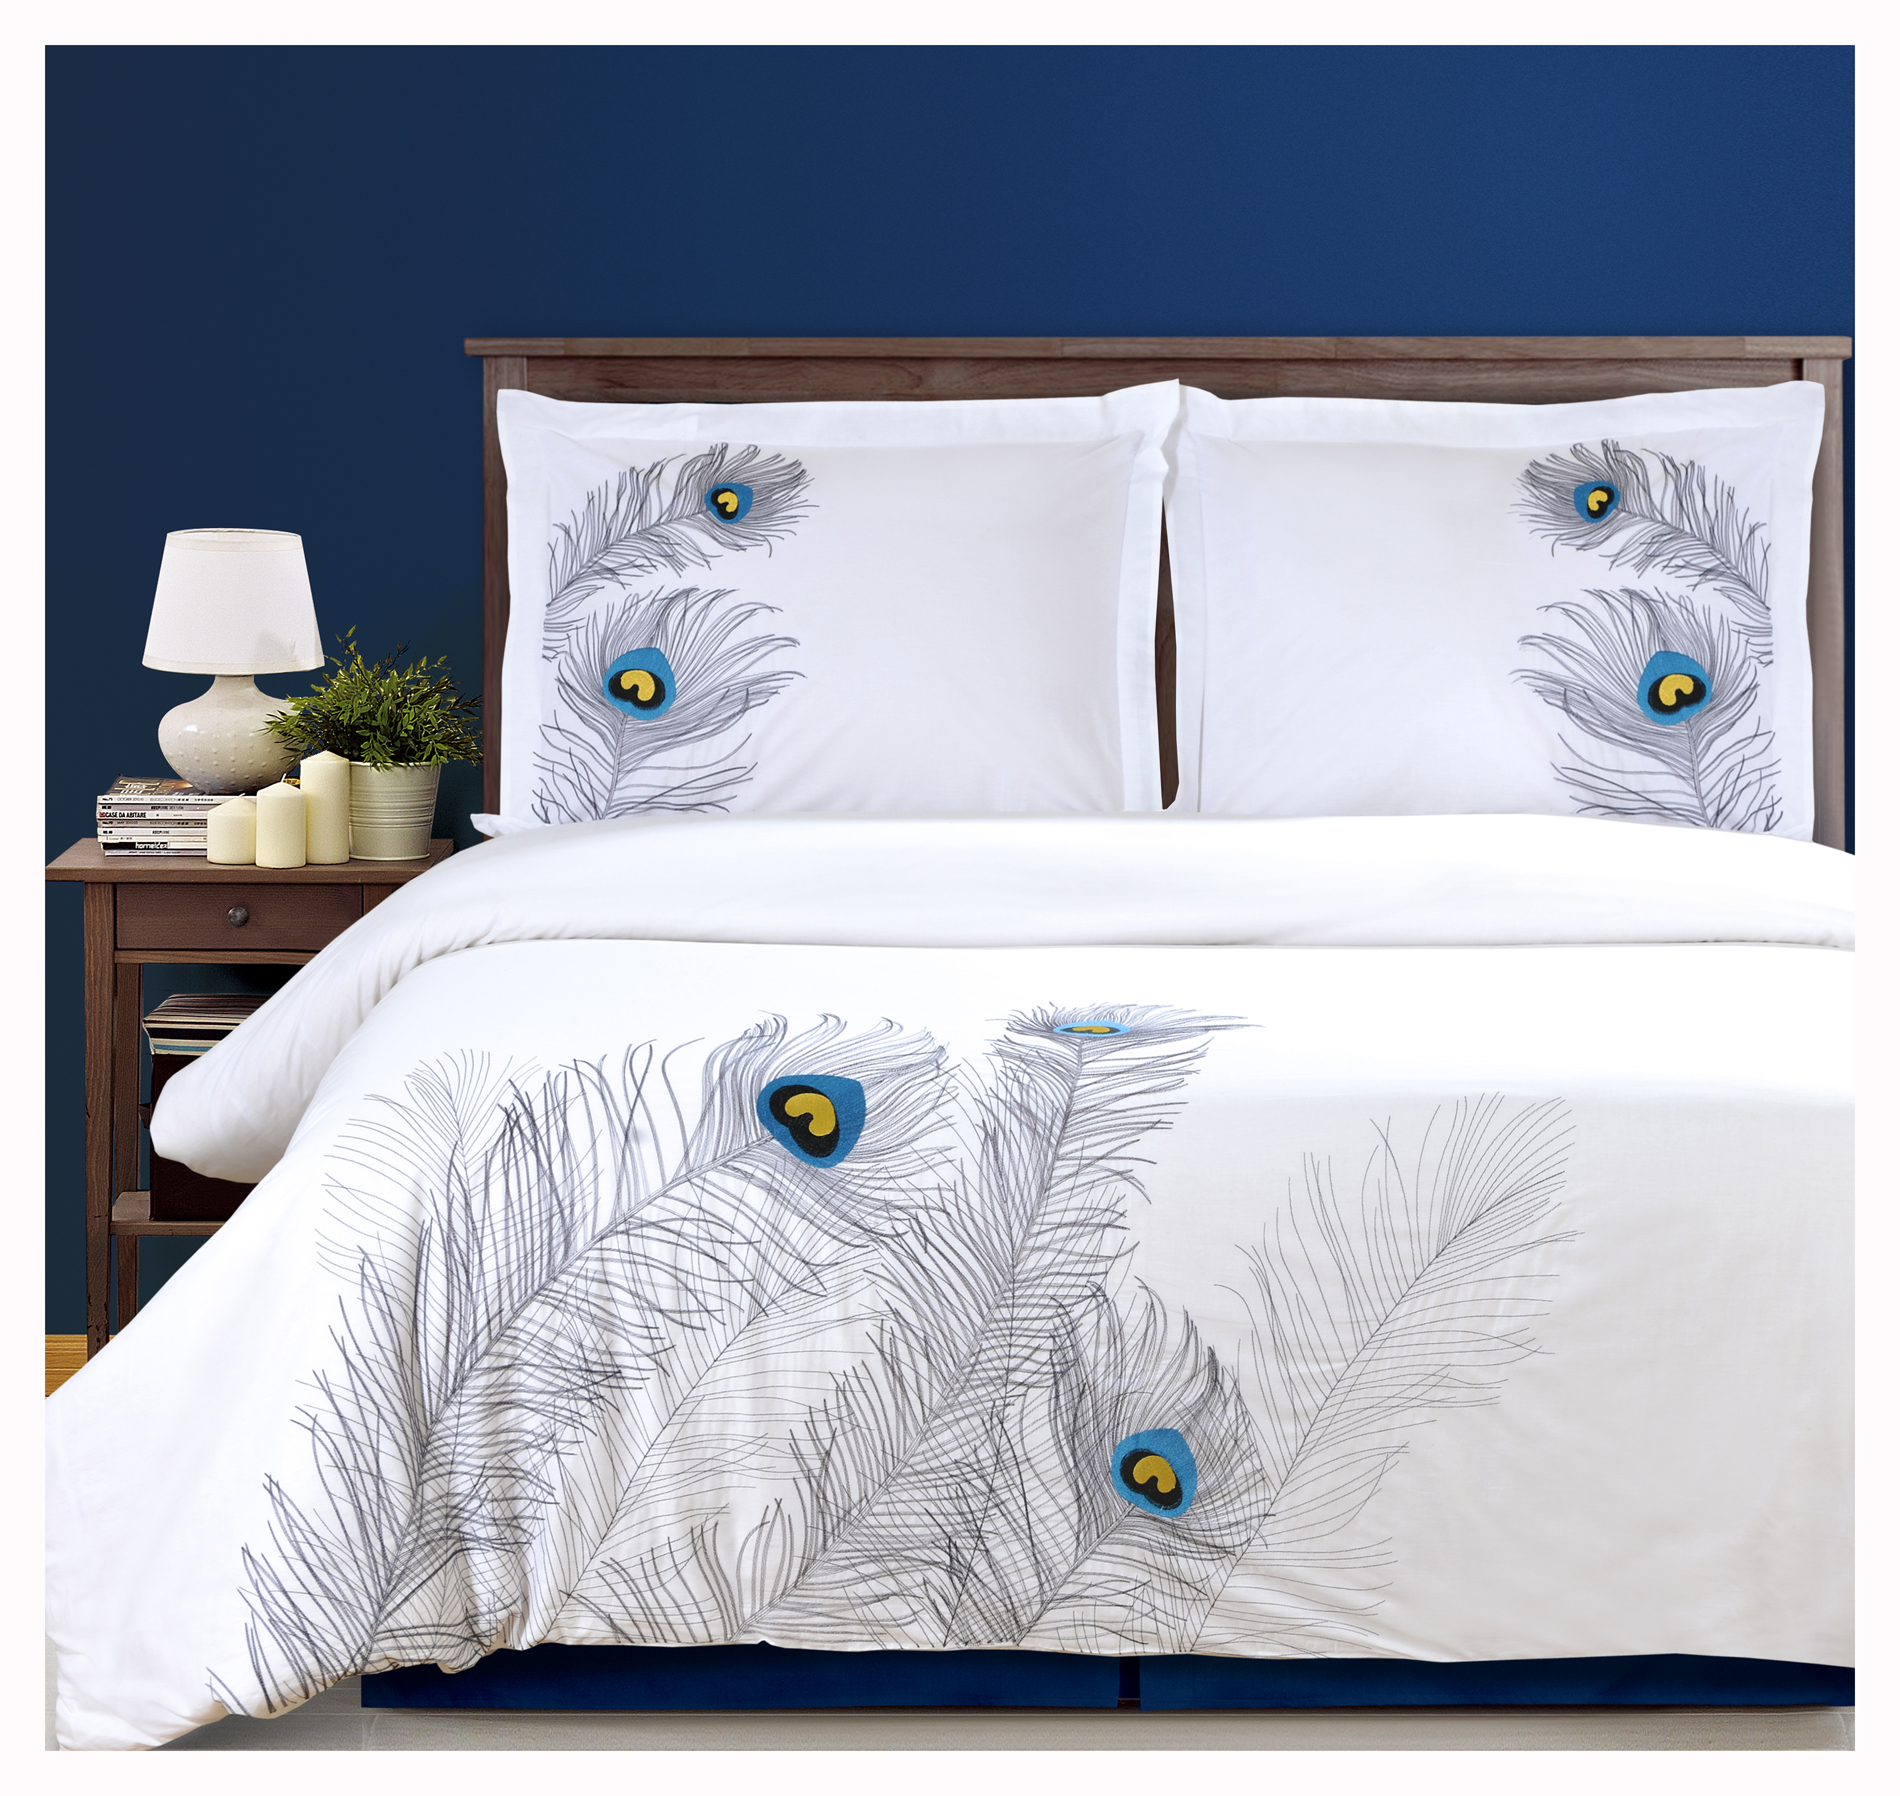 Peacock bedroom set - Duvet Cover Set With Pillow Shams Embroidered Feather Peacock Design